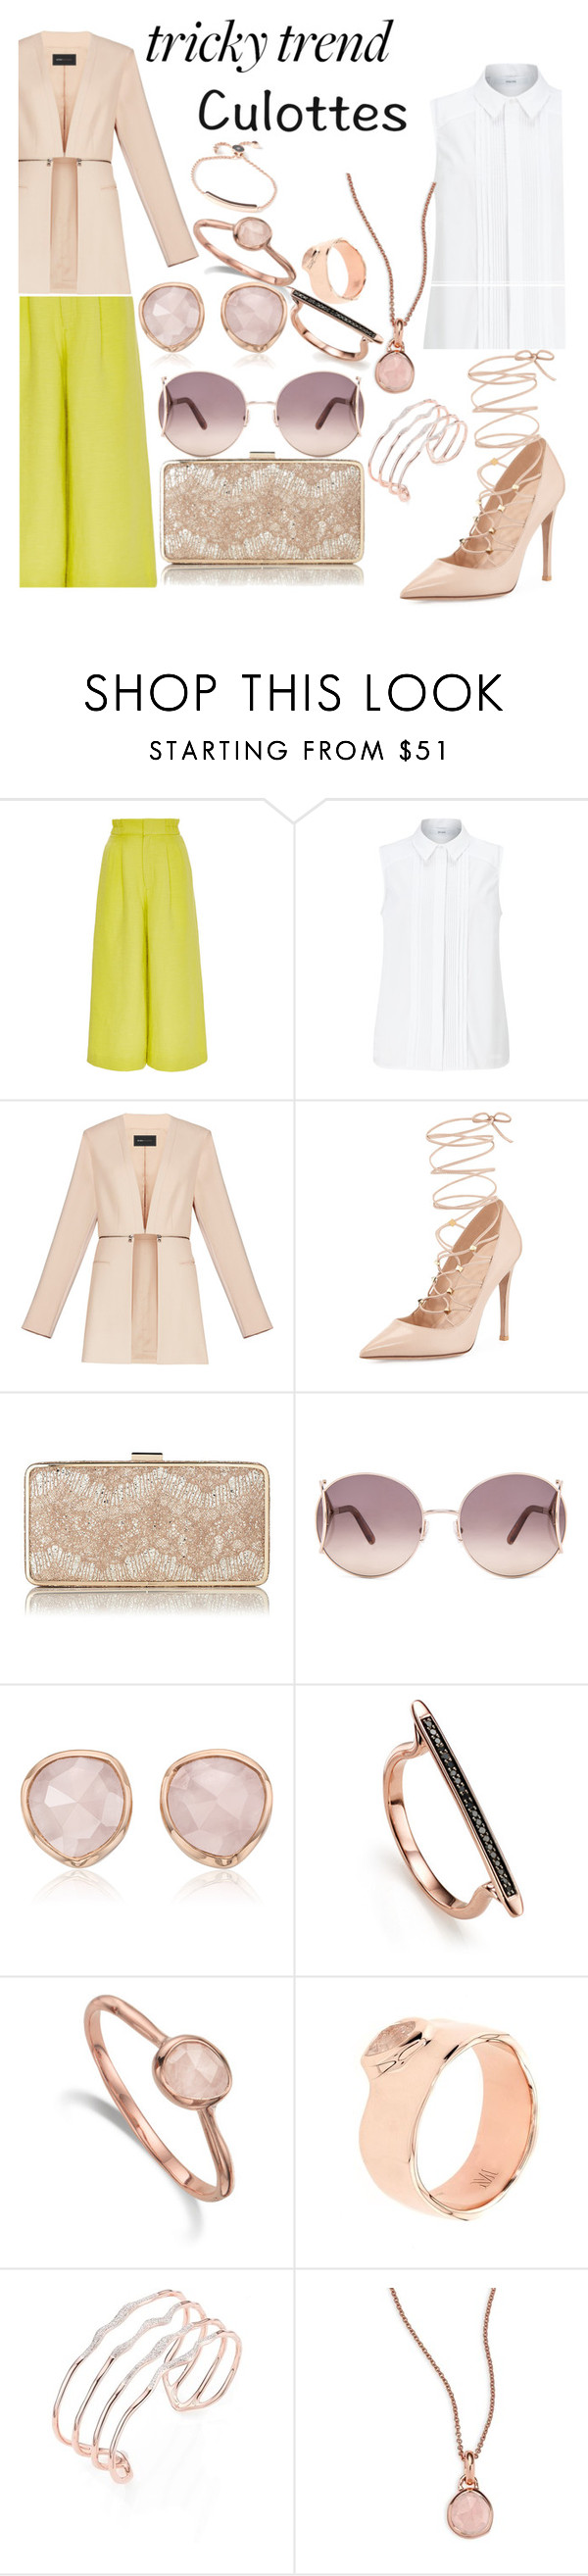 """""""TrIcKy TrEnDs"""" by janaboughanem ❤ liked on Polyvore featuring Apiece Apart, John Lewis, BCBGMAXAZRIA, Valentino, L.K.Bennett, Chloé, Monica Vinader, TrickyTrend and culottes"""